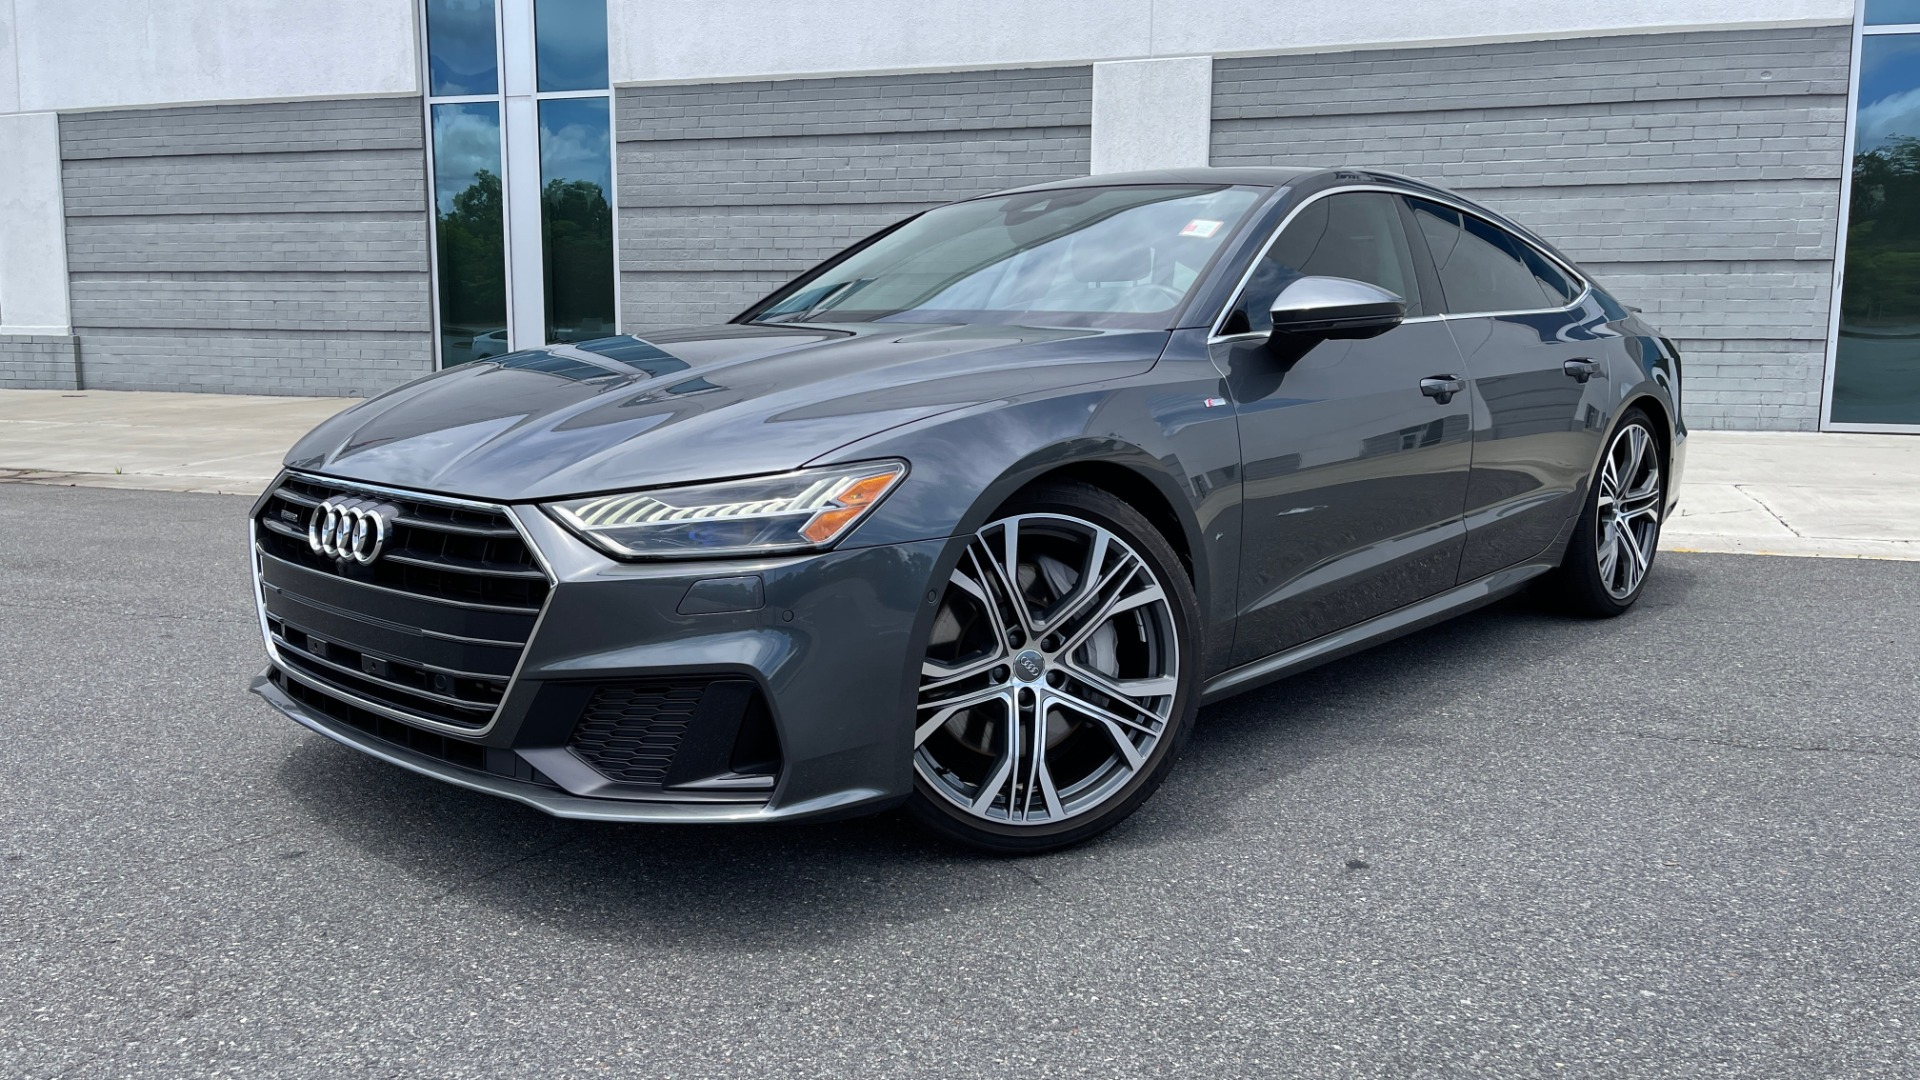 Used 2019 Audi A7 PRESTIGE 55 TFSI 3.0T / NAV / B&O SND / SUNROOF / S-LINE / 21IN WHLS / REAR for sale $66,995 at Formula Imports in Charlotte NC 28227 1